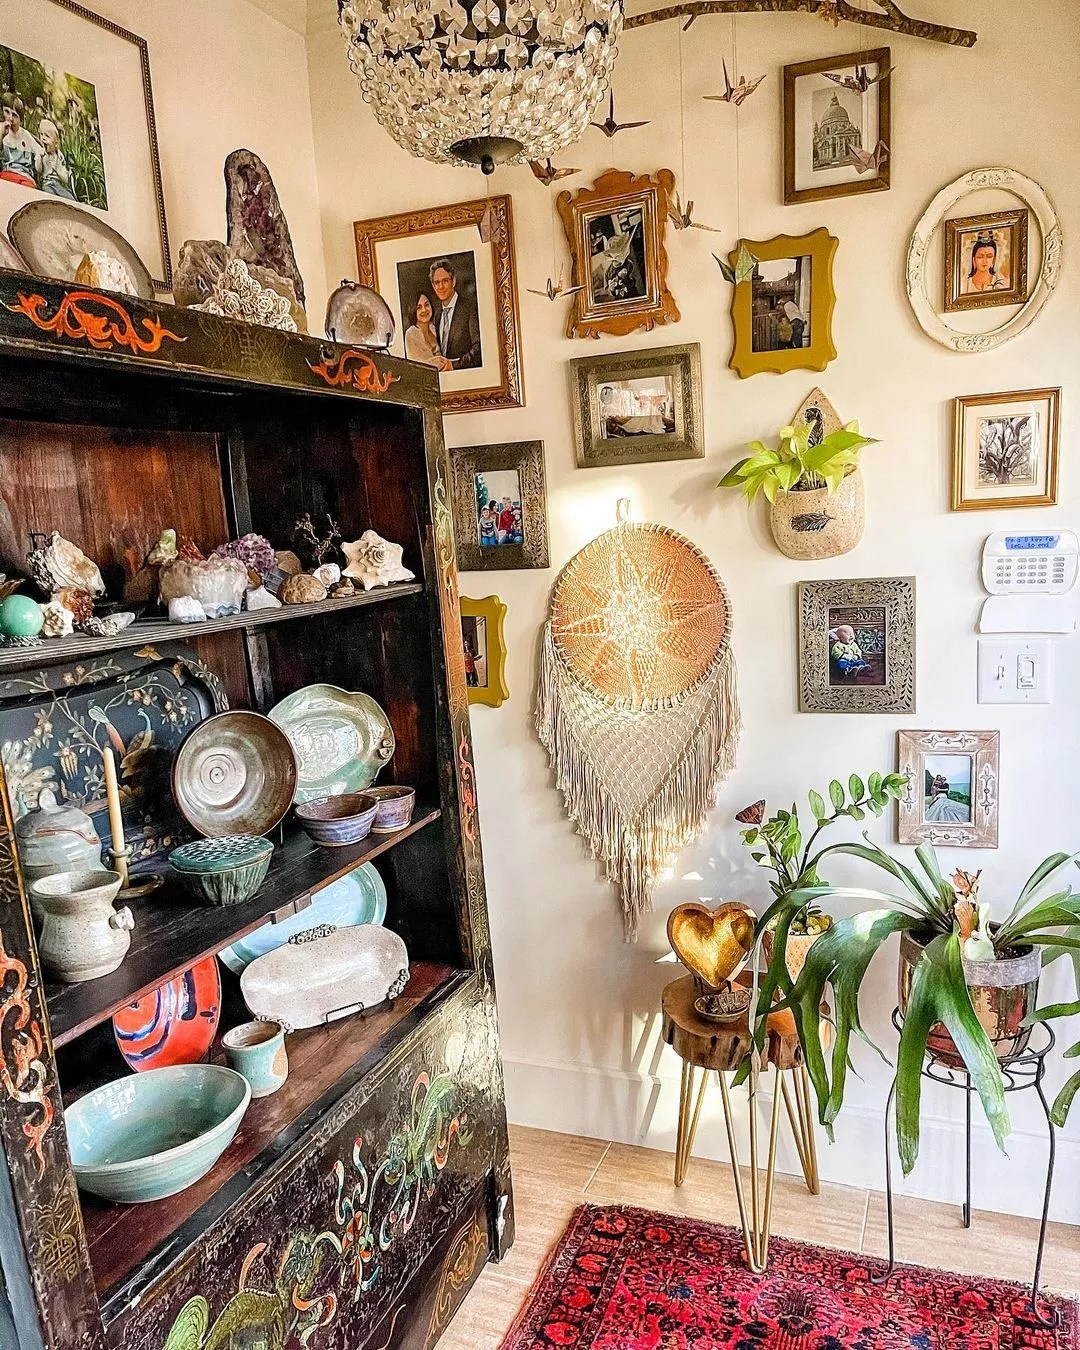 Decorated, antique bookshelf presenting vintage platters, pots, shells, and geods, beside plants and a wall with photos framed in old, unique frames. Photo by Instagram user @the.rustic.bohemian.